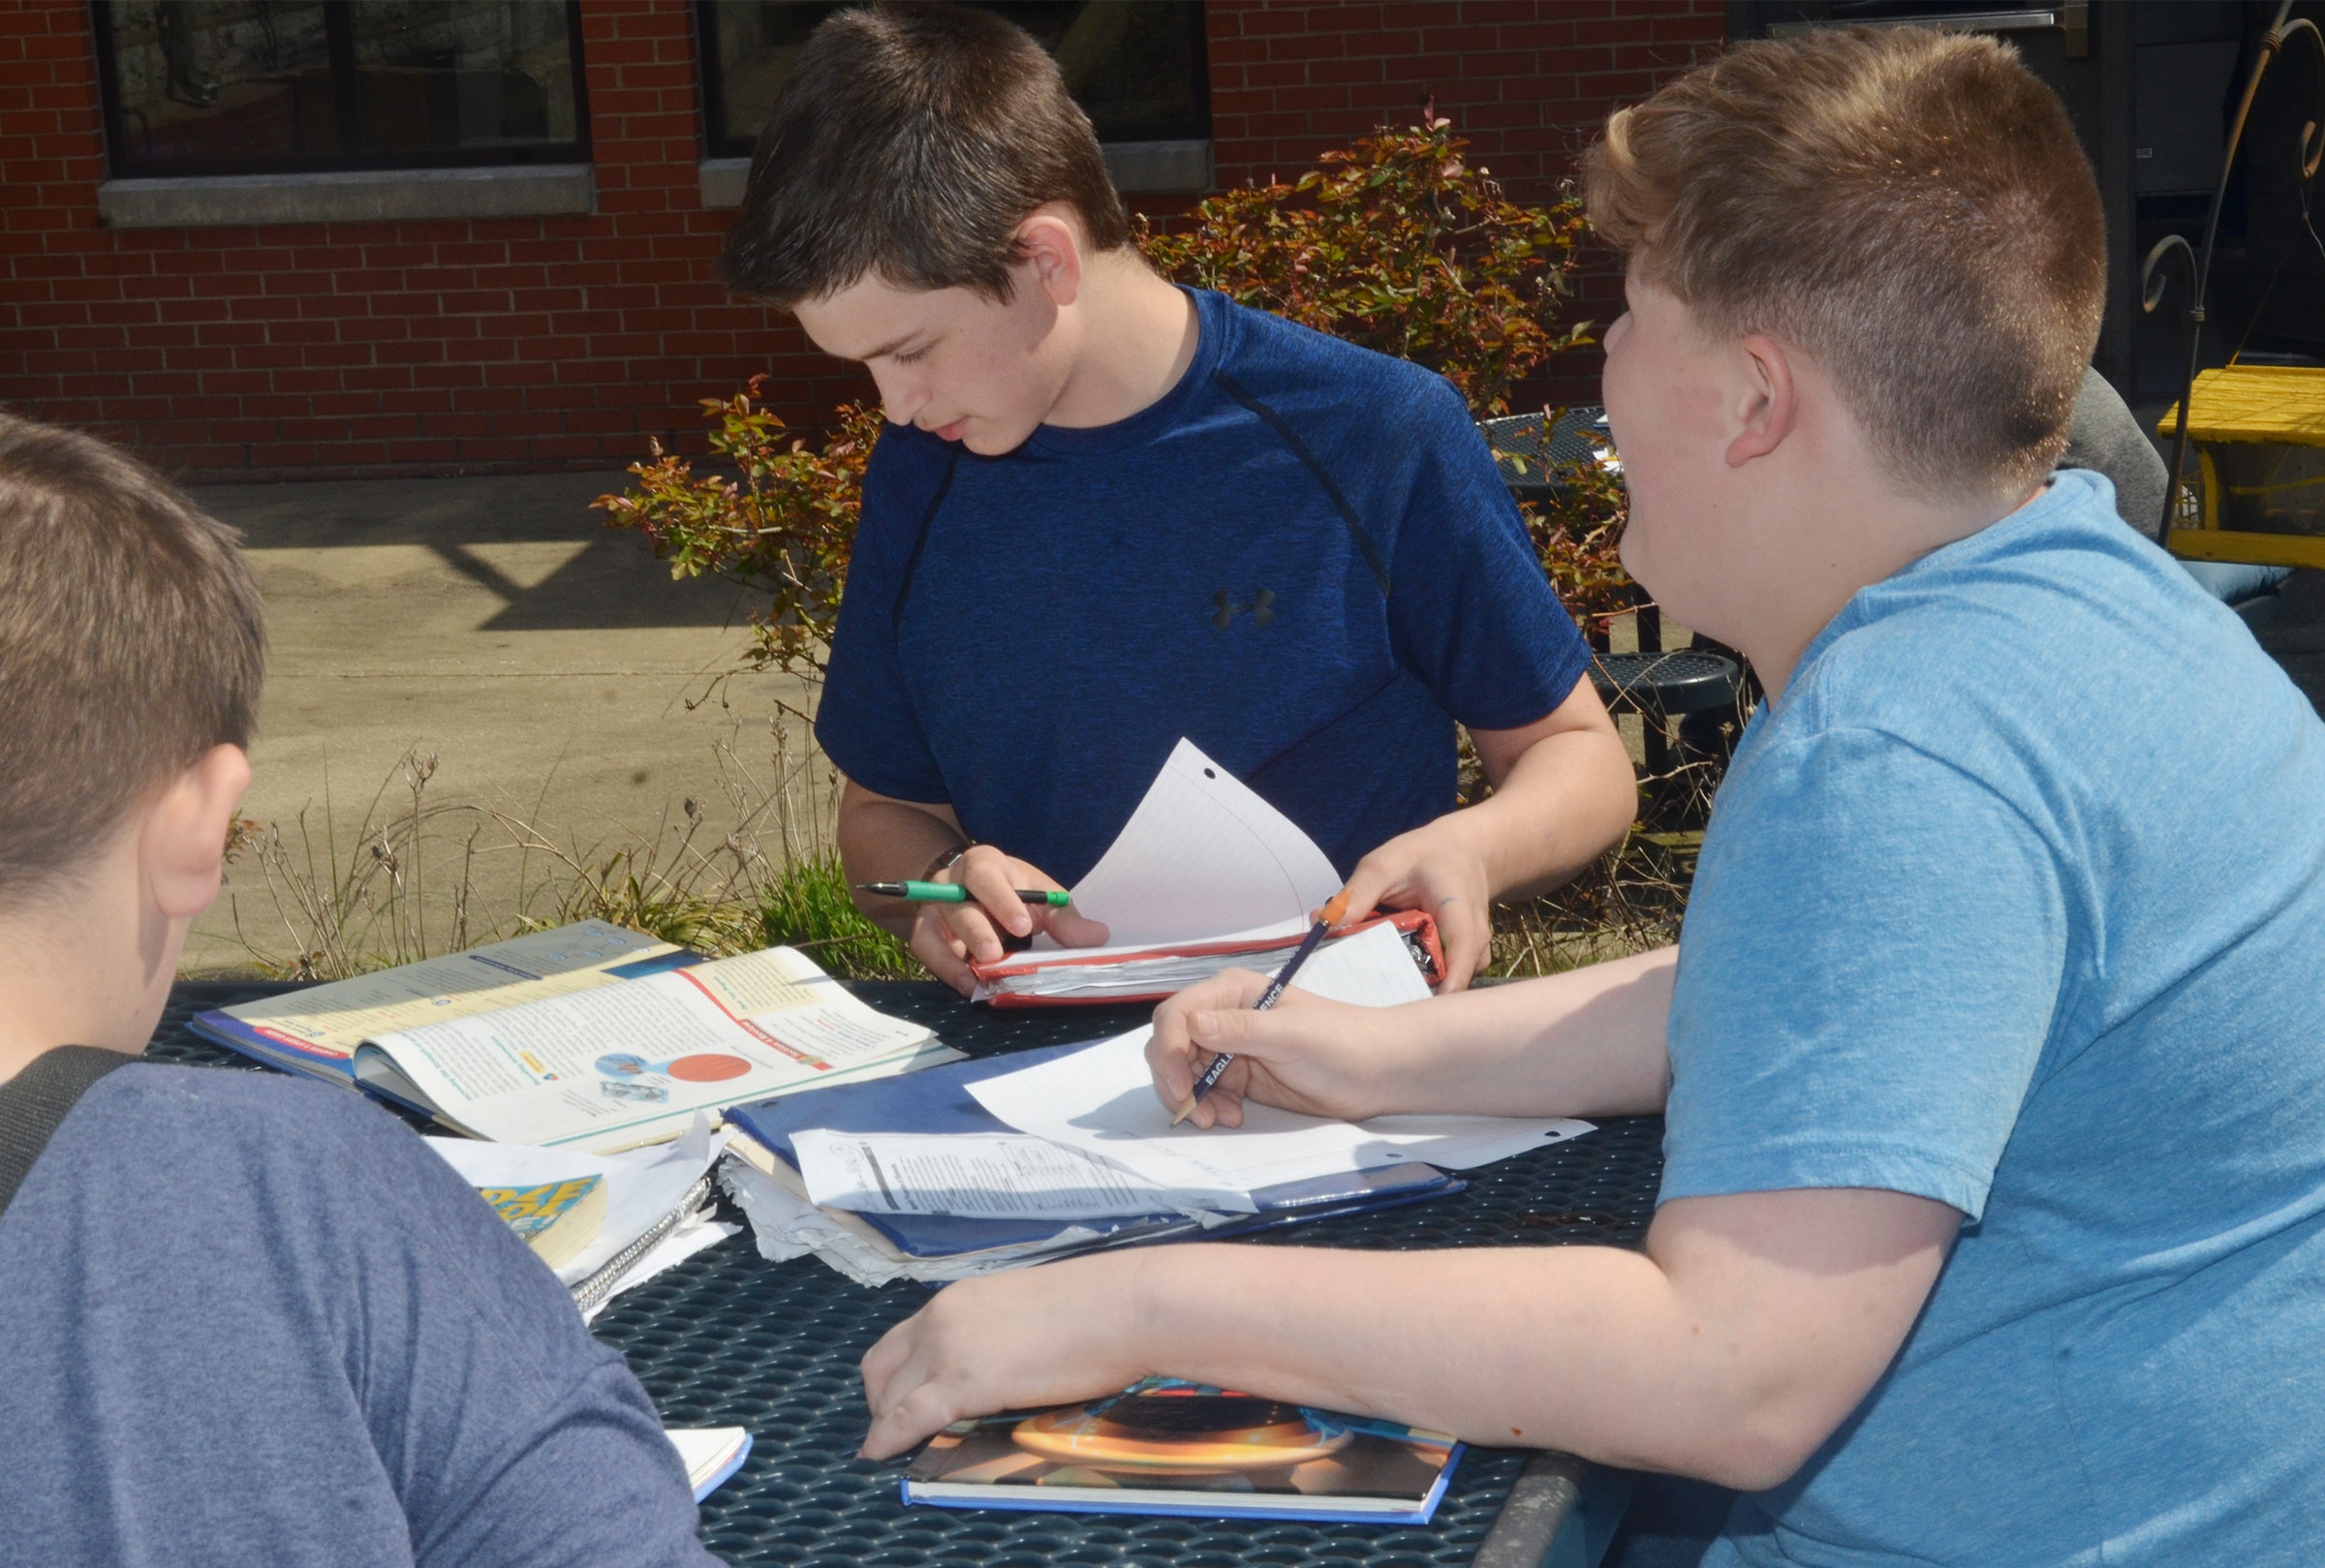 CMS seventh-graders Caden Cowherd, at left, and Blake Settle study together.